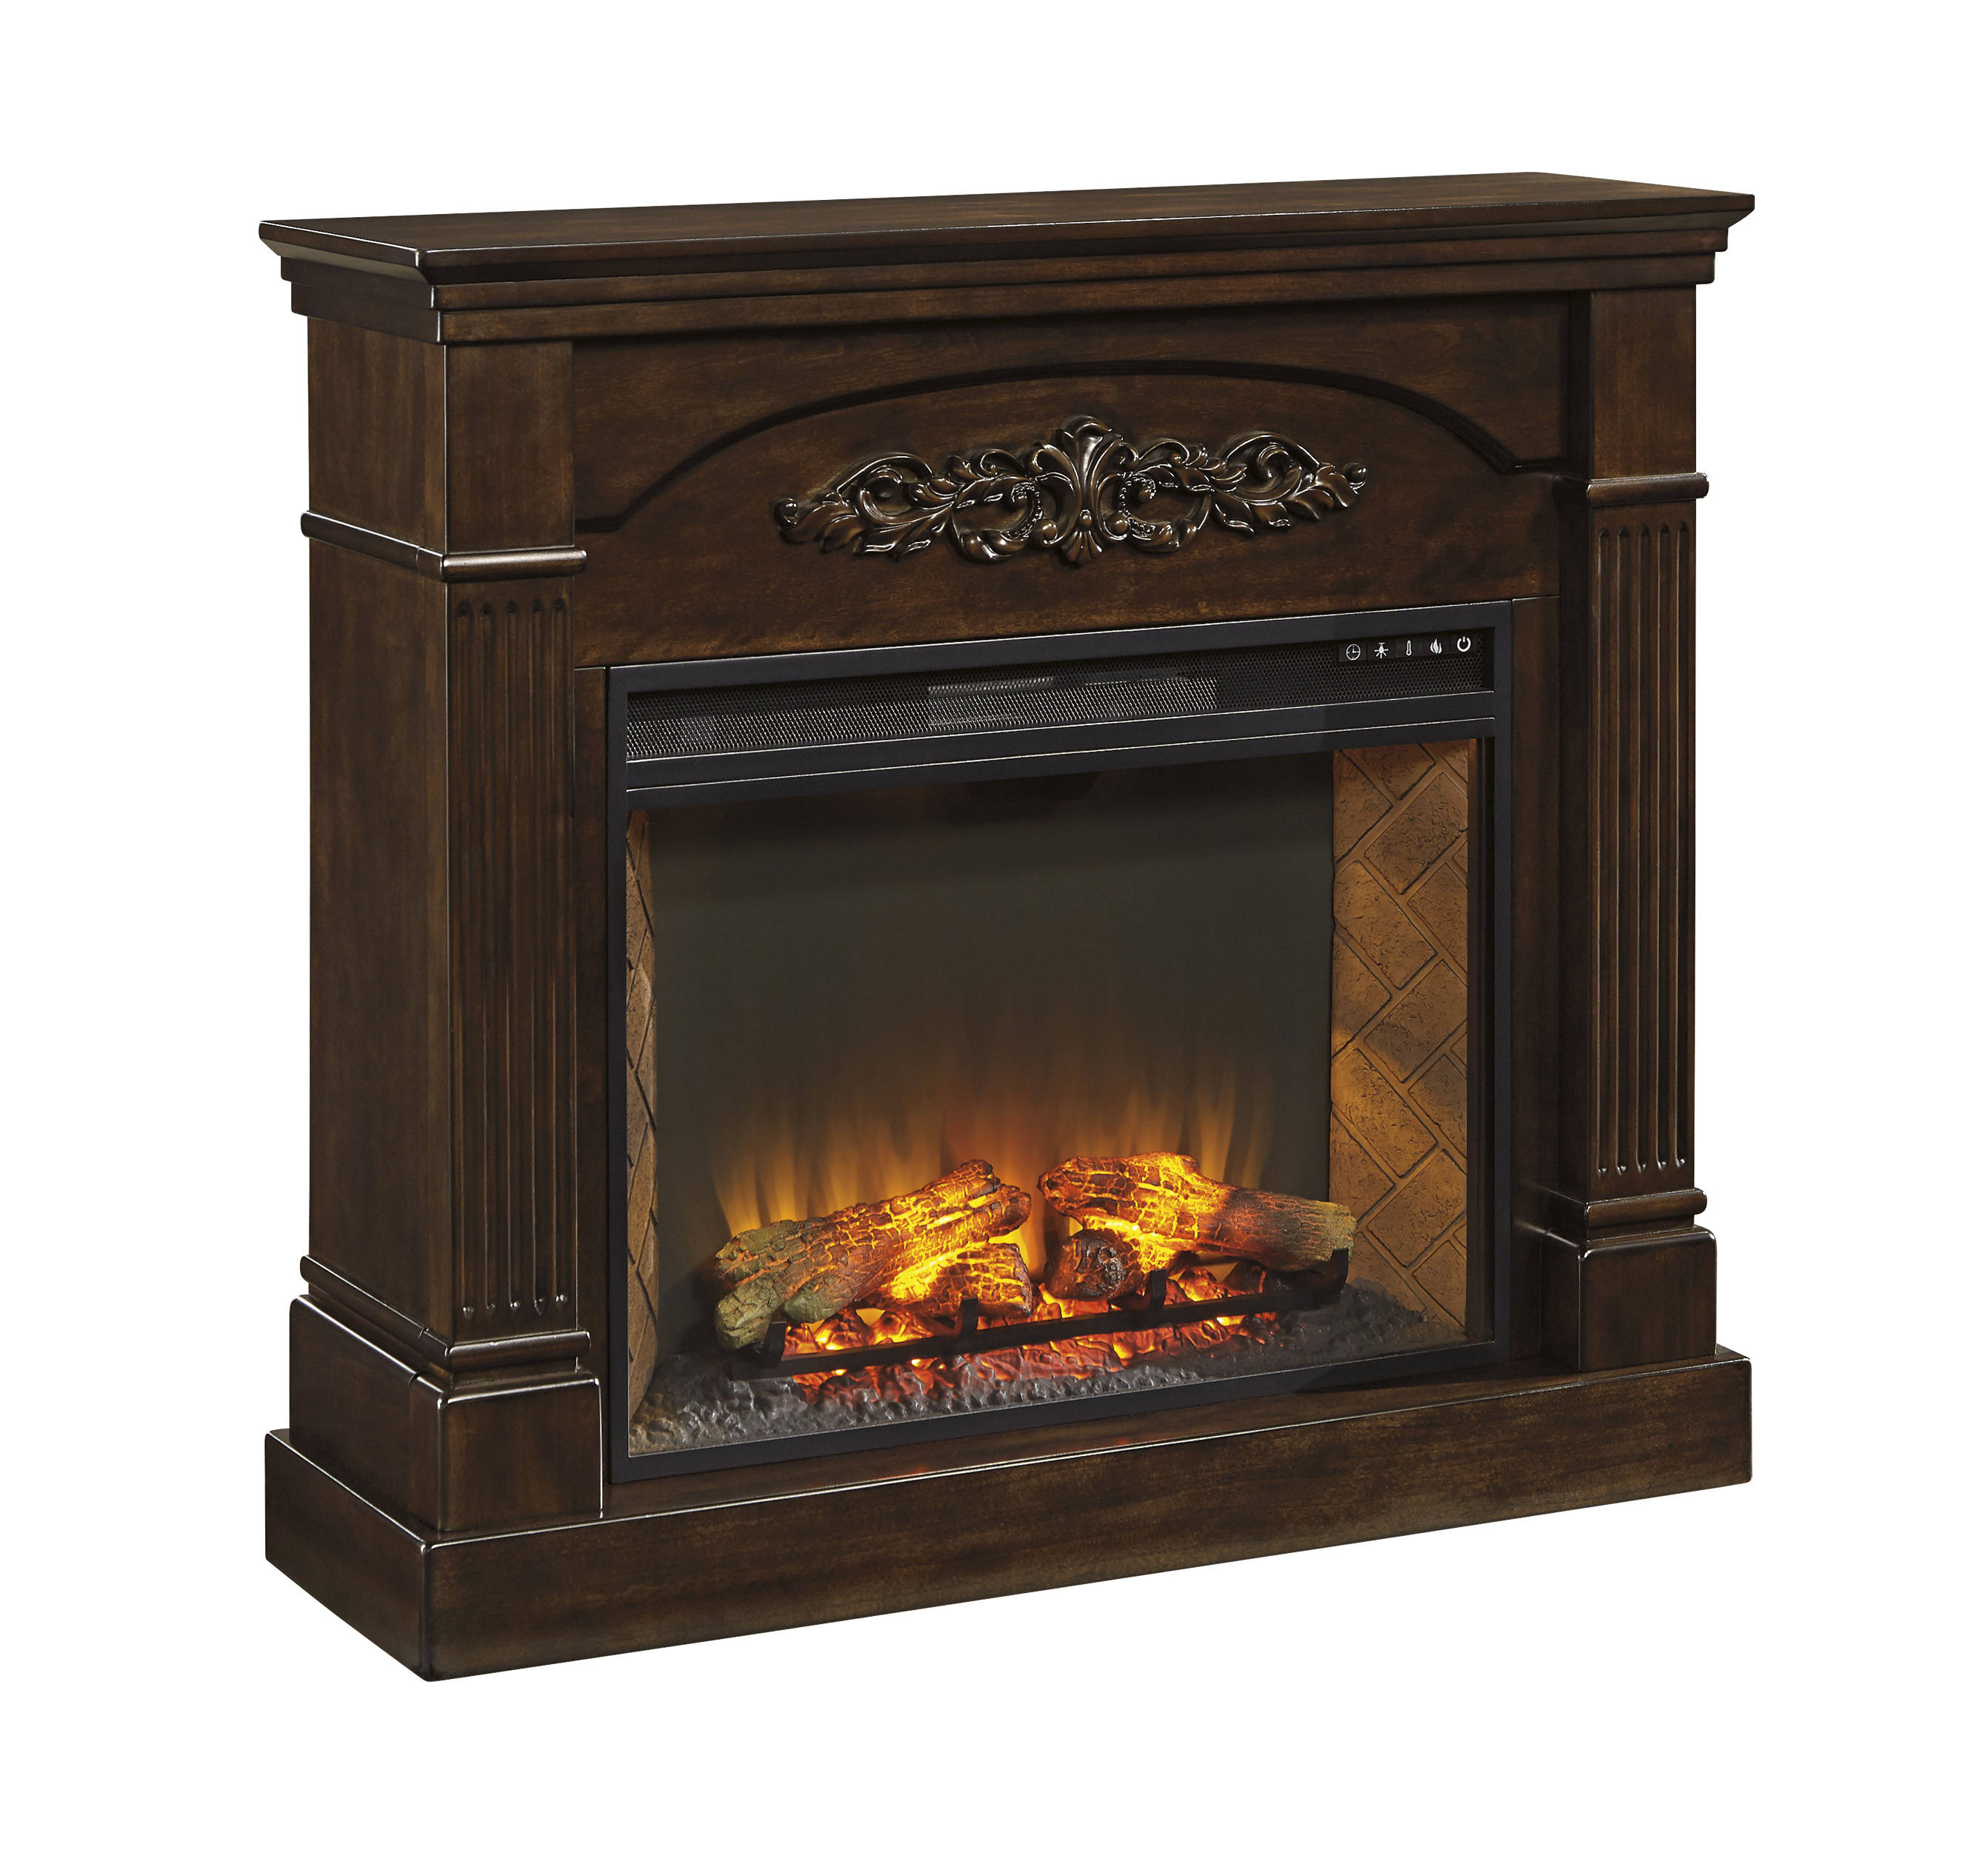 Brown Fireplace Mantel : Boddew traditional classics dark brown wood fireplace